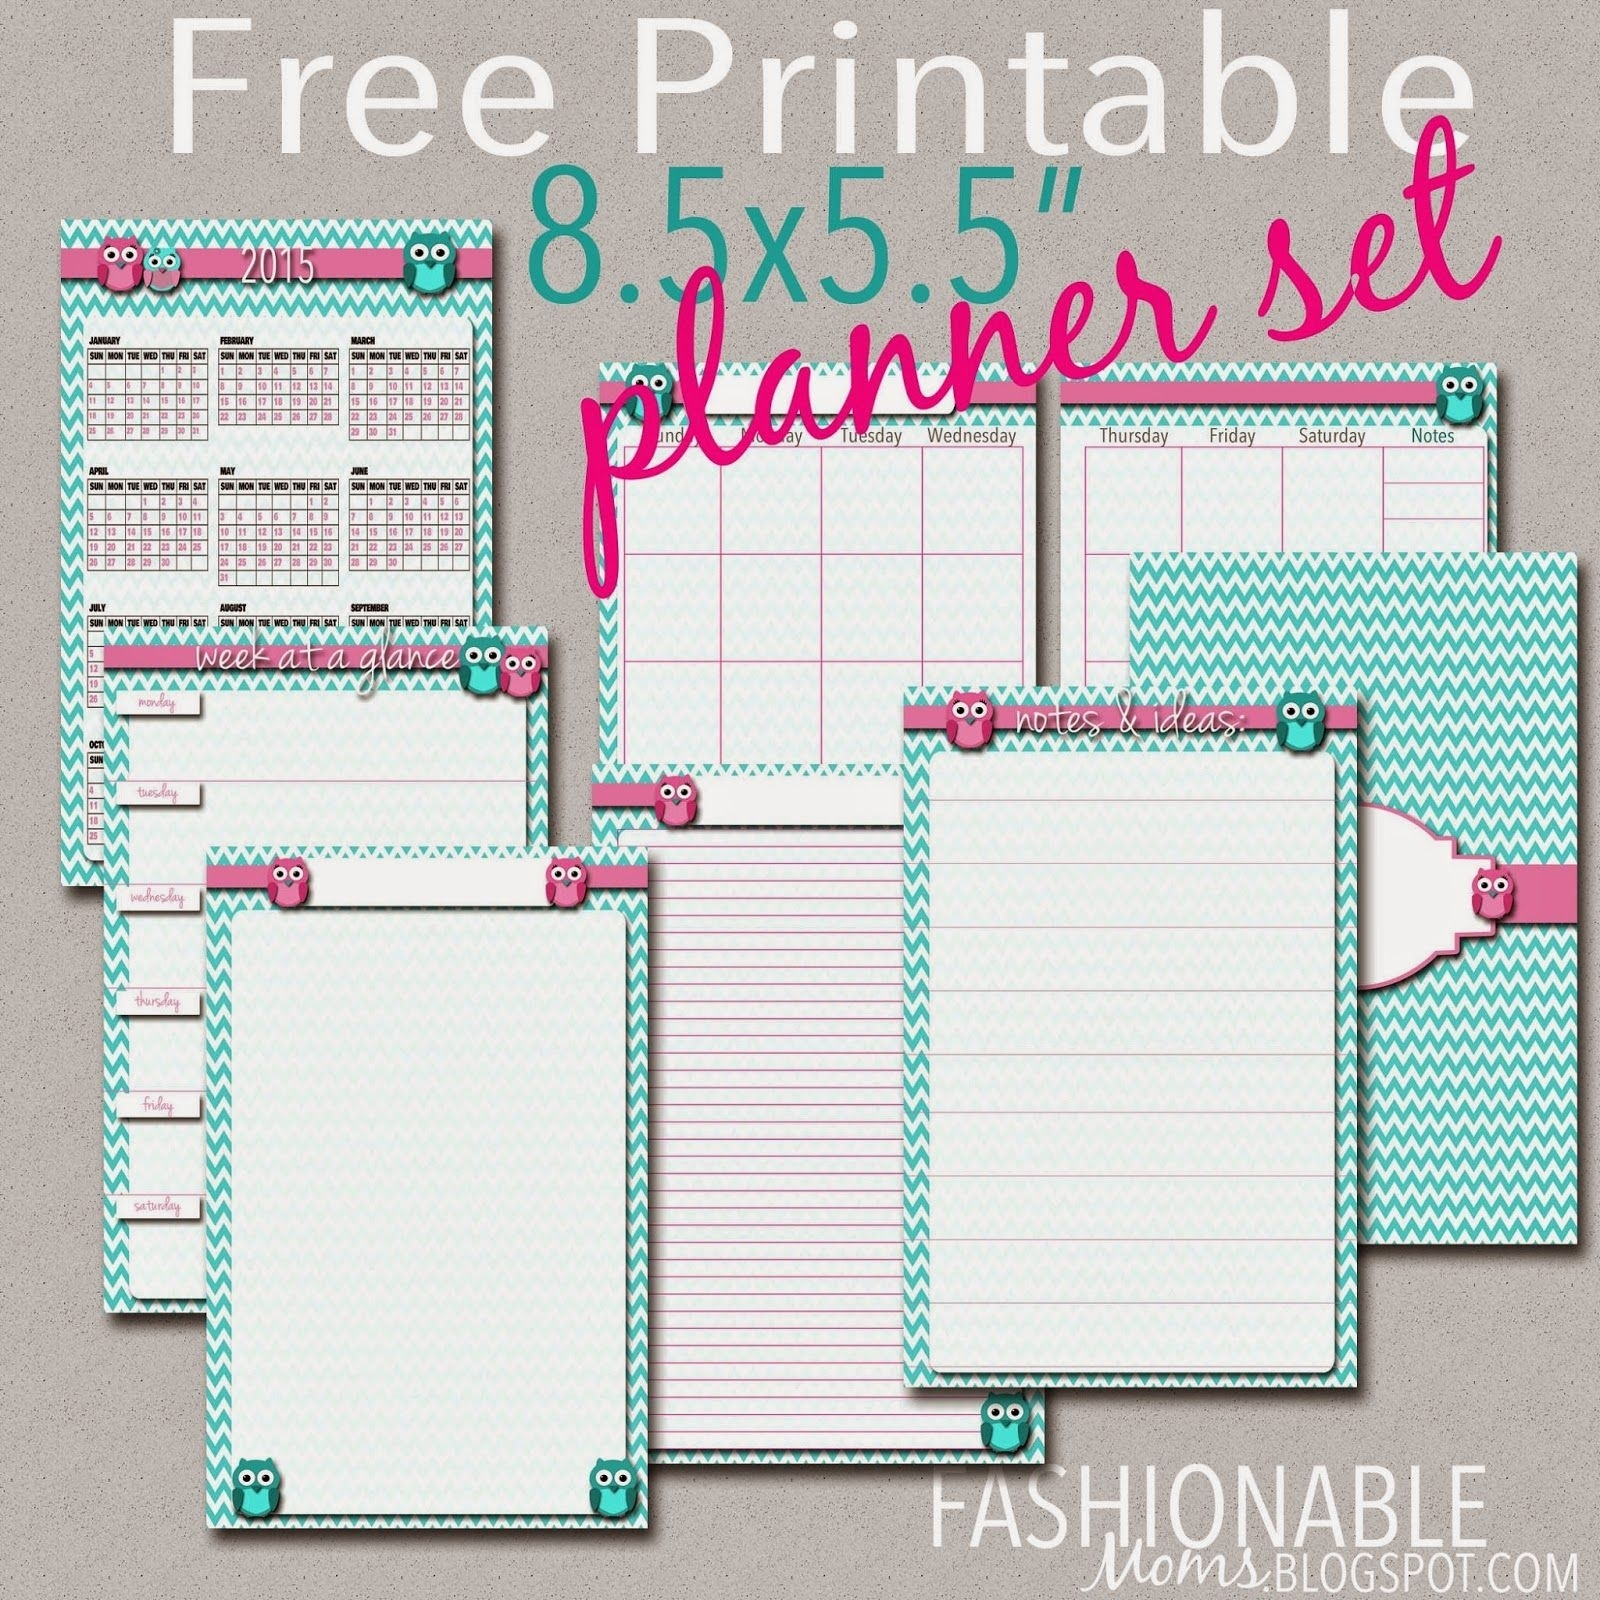 Fashionable Moms: Free Printable Half Page Owl Planner Set   School for Free Printable Daily Planner Page Half